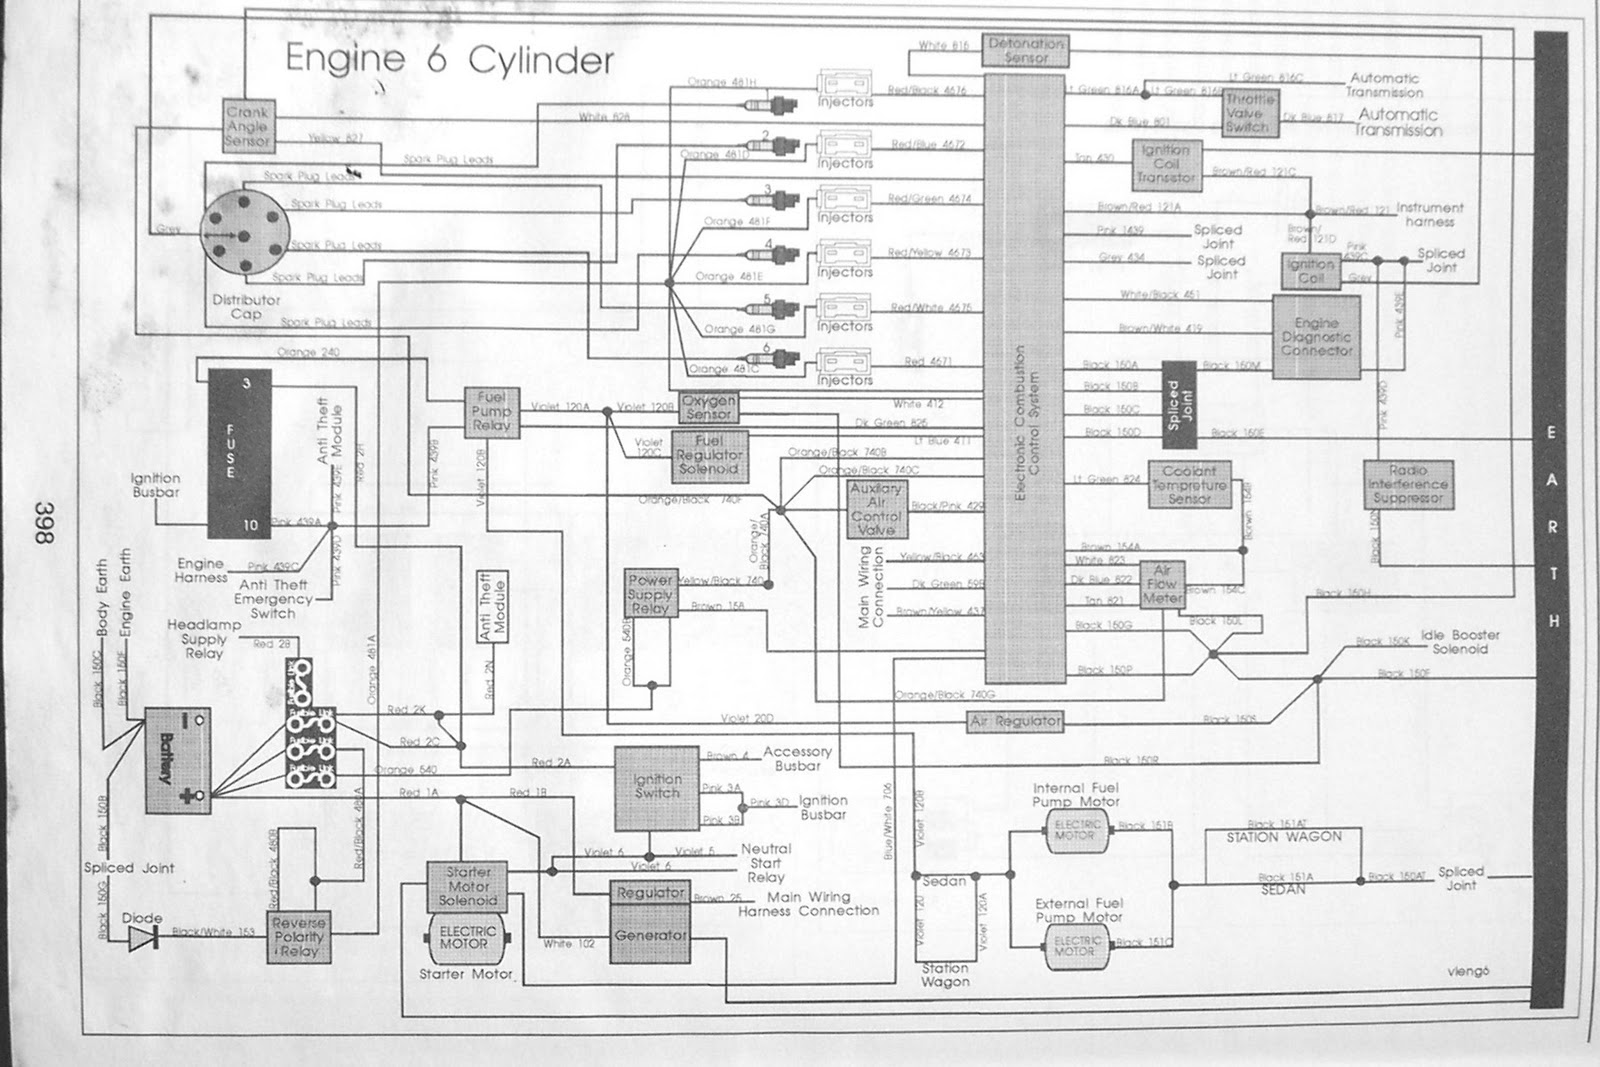 14b vt commodore wiring diagram efcaviation com vl commodore ecu wiring diagram at edmiracle.co